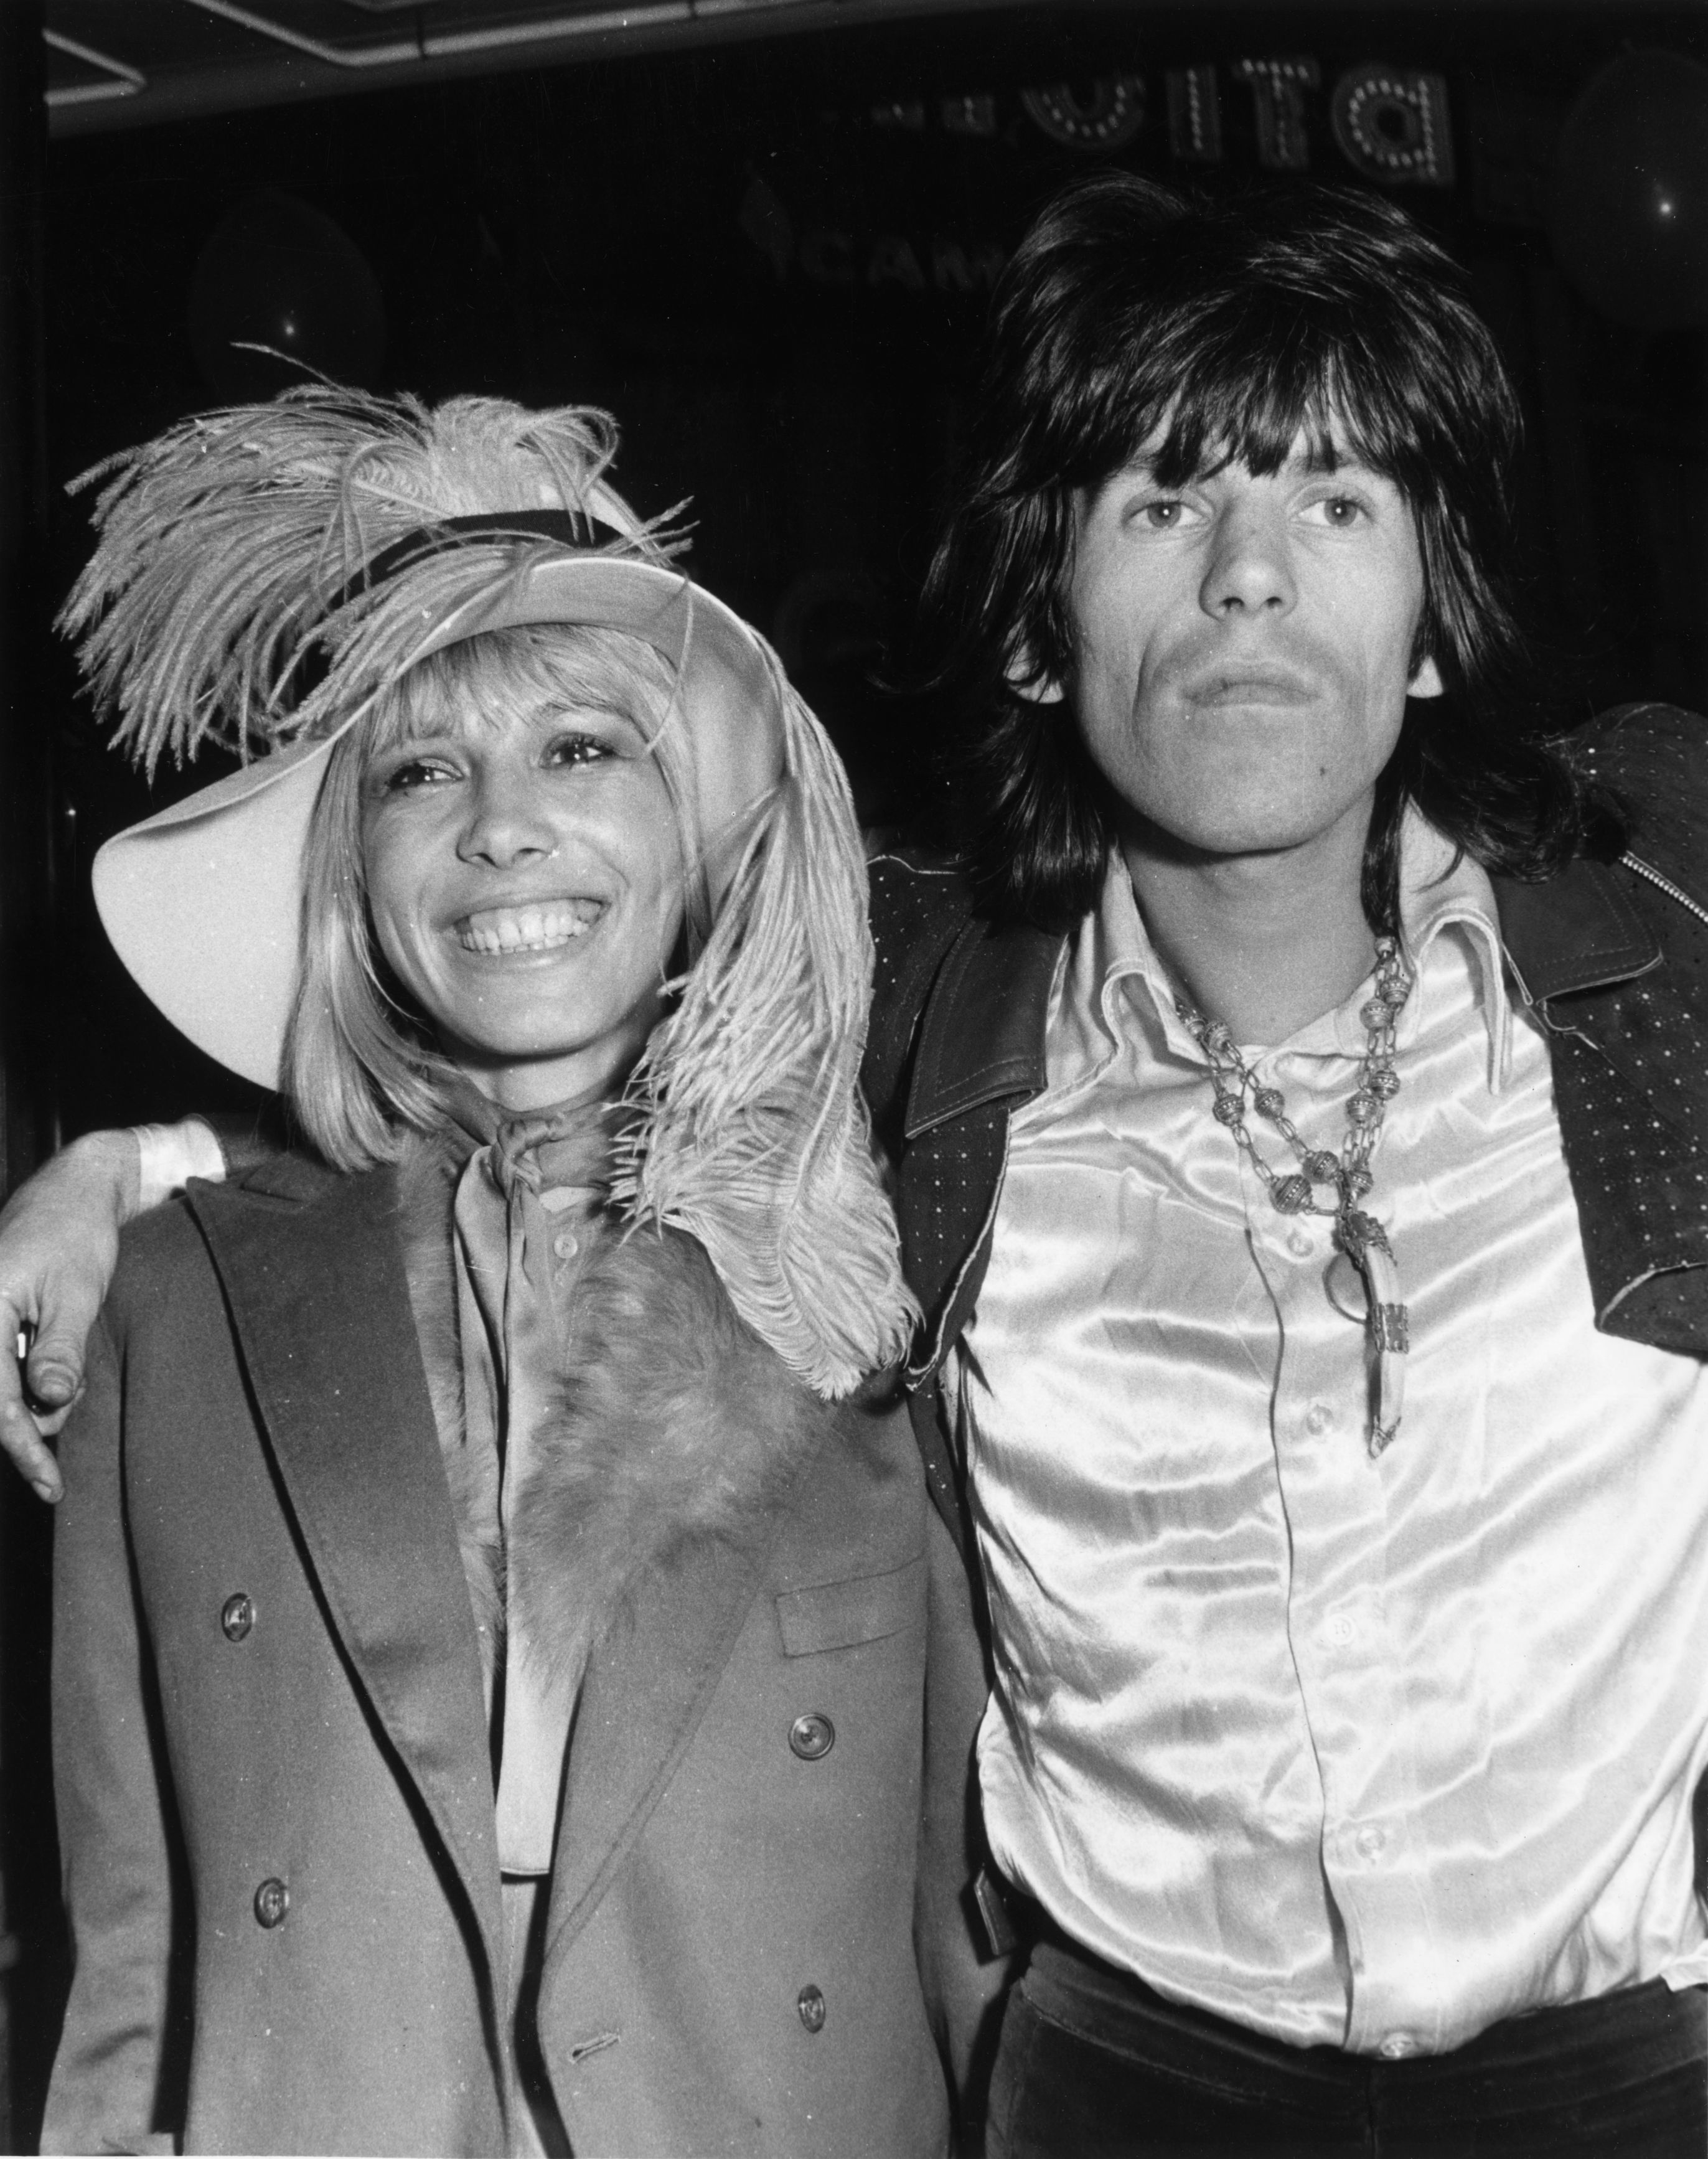 Keith Richards of the Rolling Stones arrives at the premiere of the Beatles film, 'Yellow Submarine' with his girlfriend Anita Pallenberg.  (Photo by Michael Webb/Getty Images)